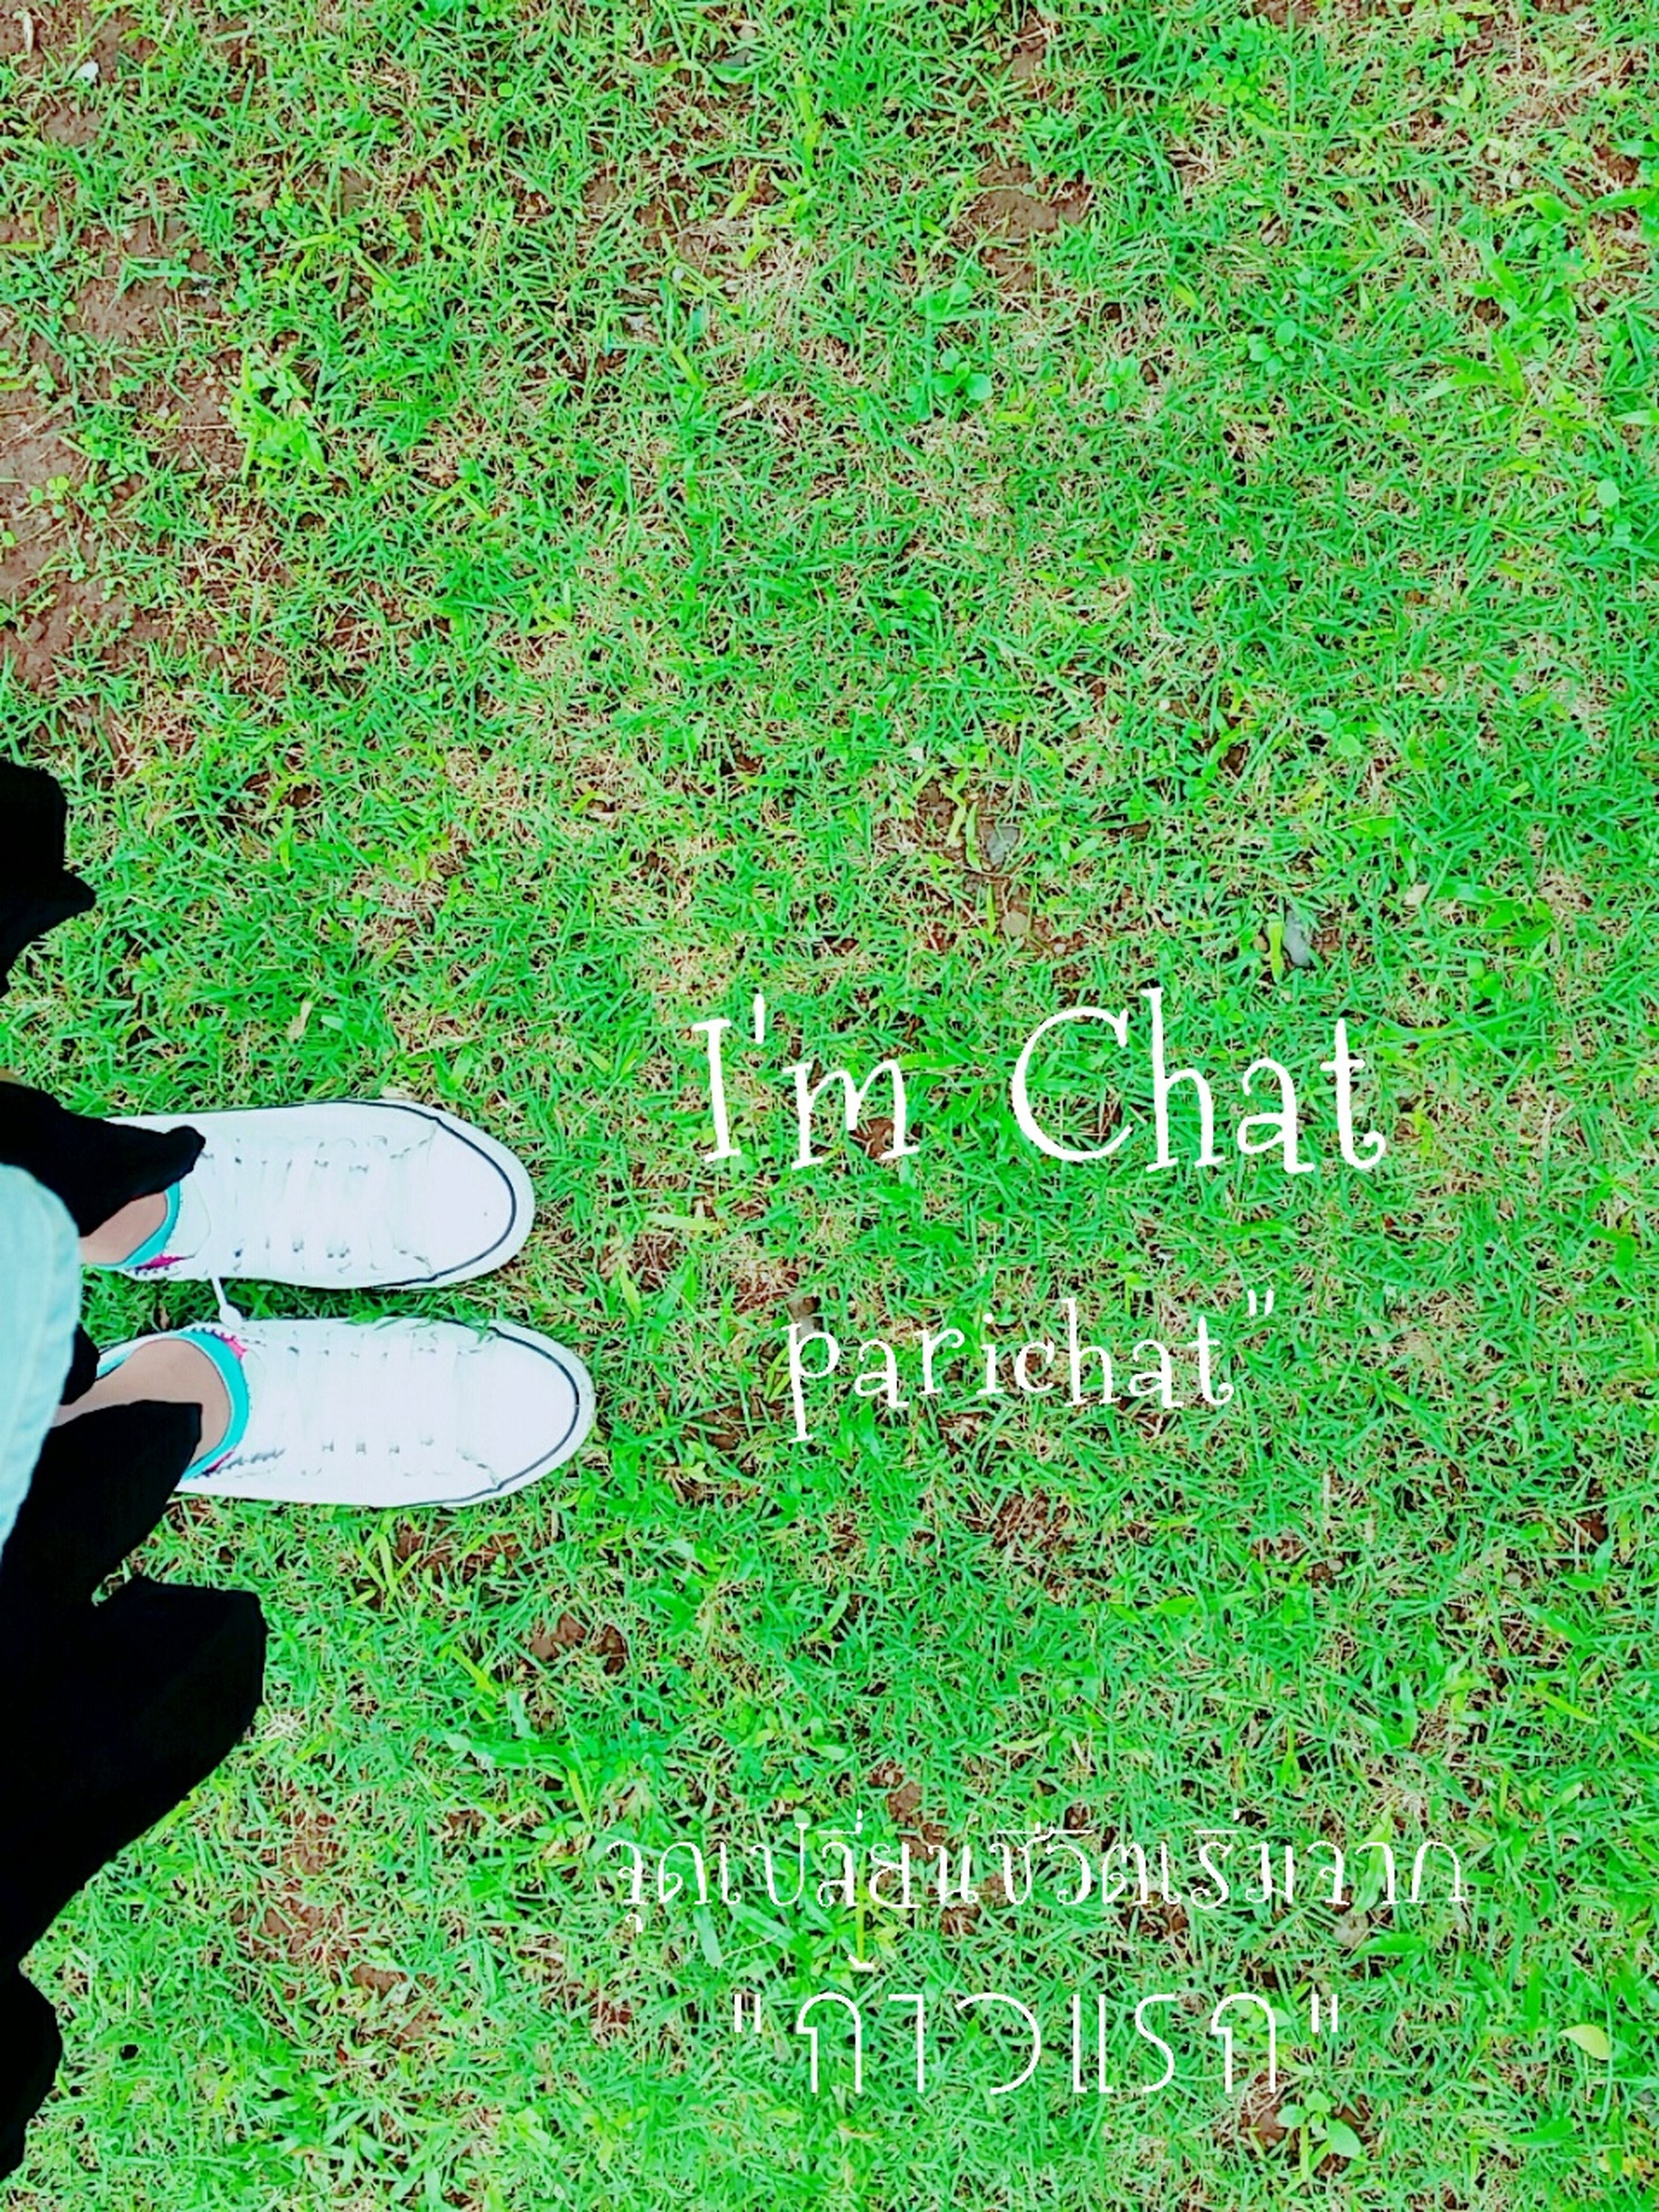 grass, text, communication, western script, green color, high angle view, field, grassy, low section, personal perspective, part of, sign, cropped, shoe, person, lifestyles, leisure activity